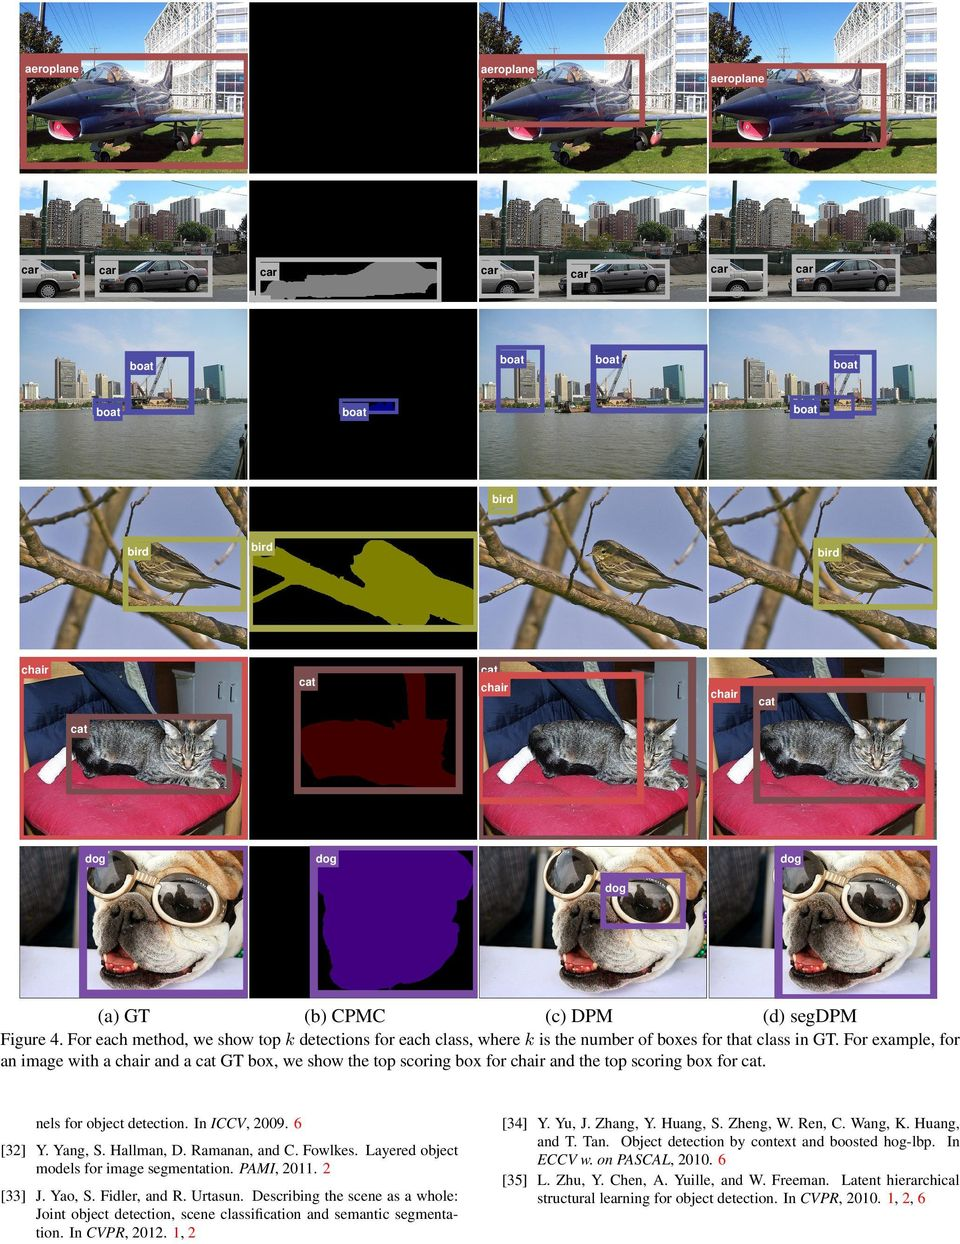 For example, for an image with a chair and a cat GT box, we show the top scoring box for chair and the top scoring box for cat. nels for object detection. In ICCV, 29. 6 [32] Y. Yang, S. Hallman, D.